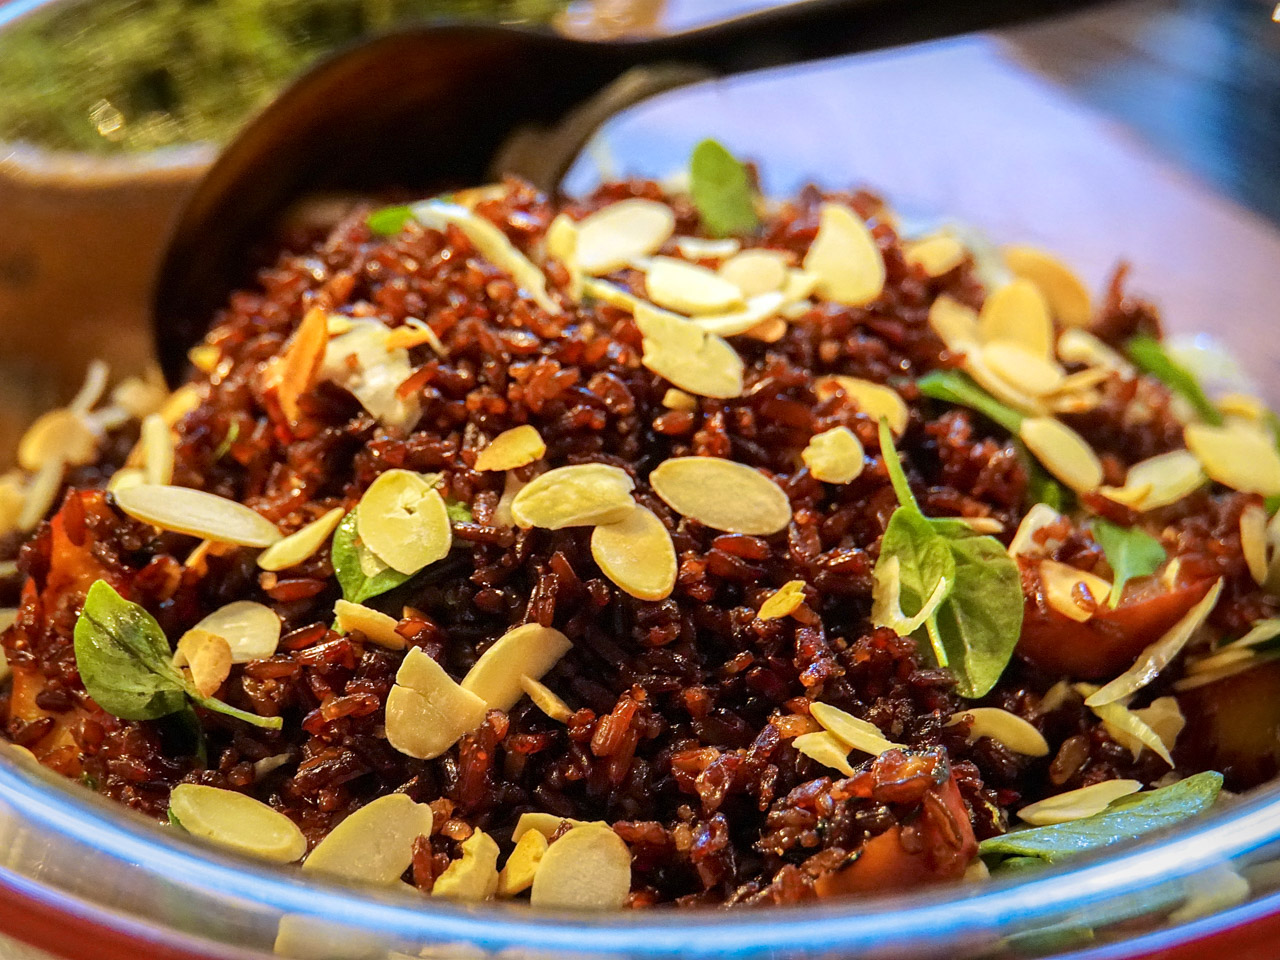 Red Camargue rice with almond flakes